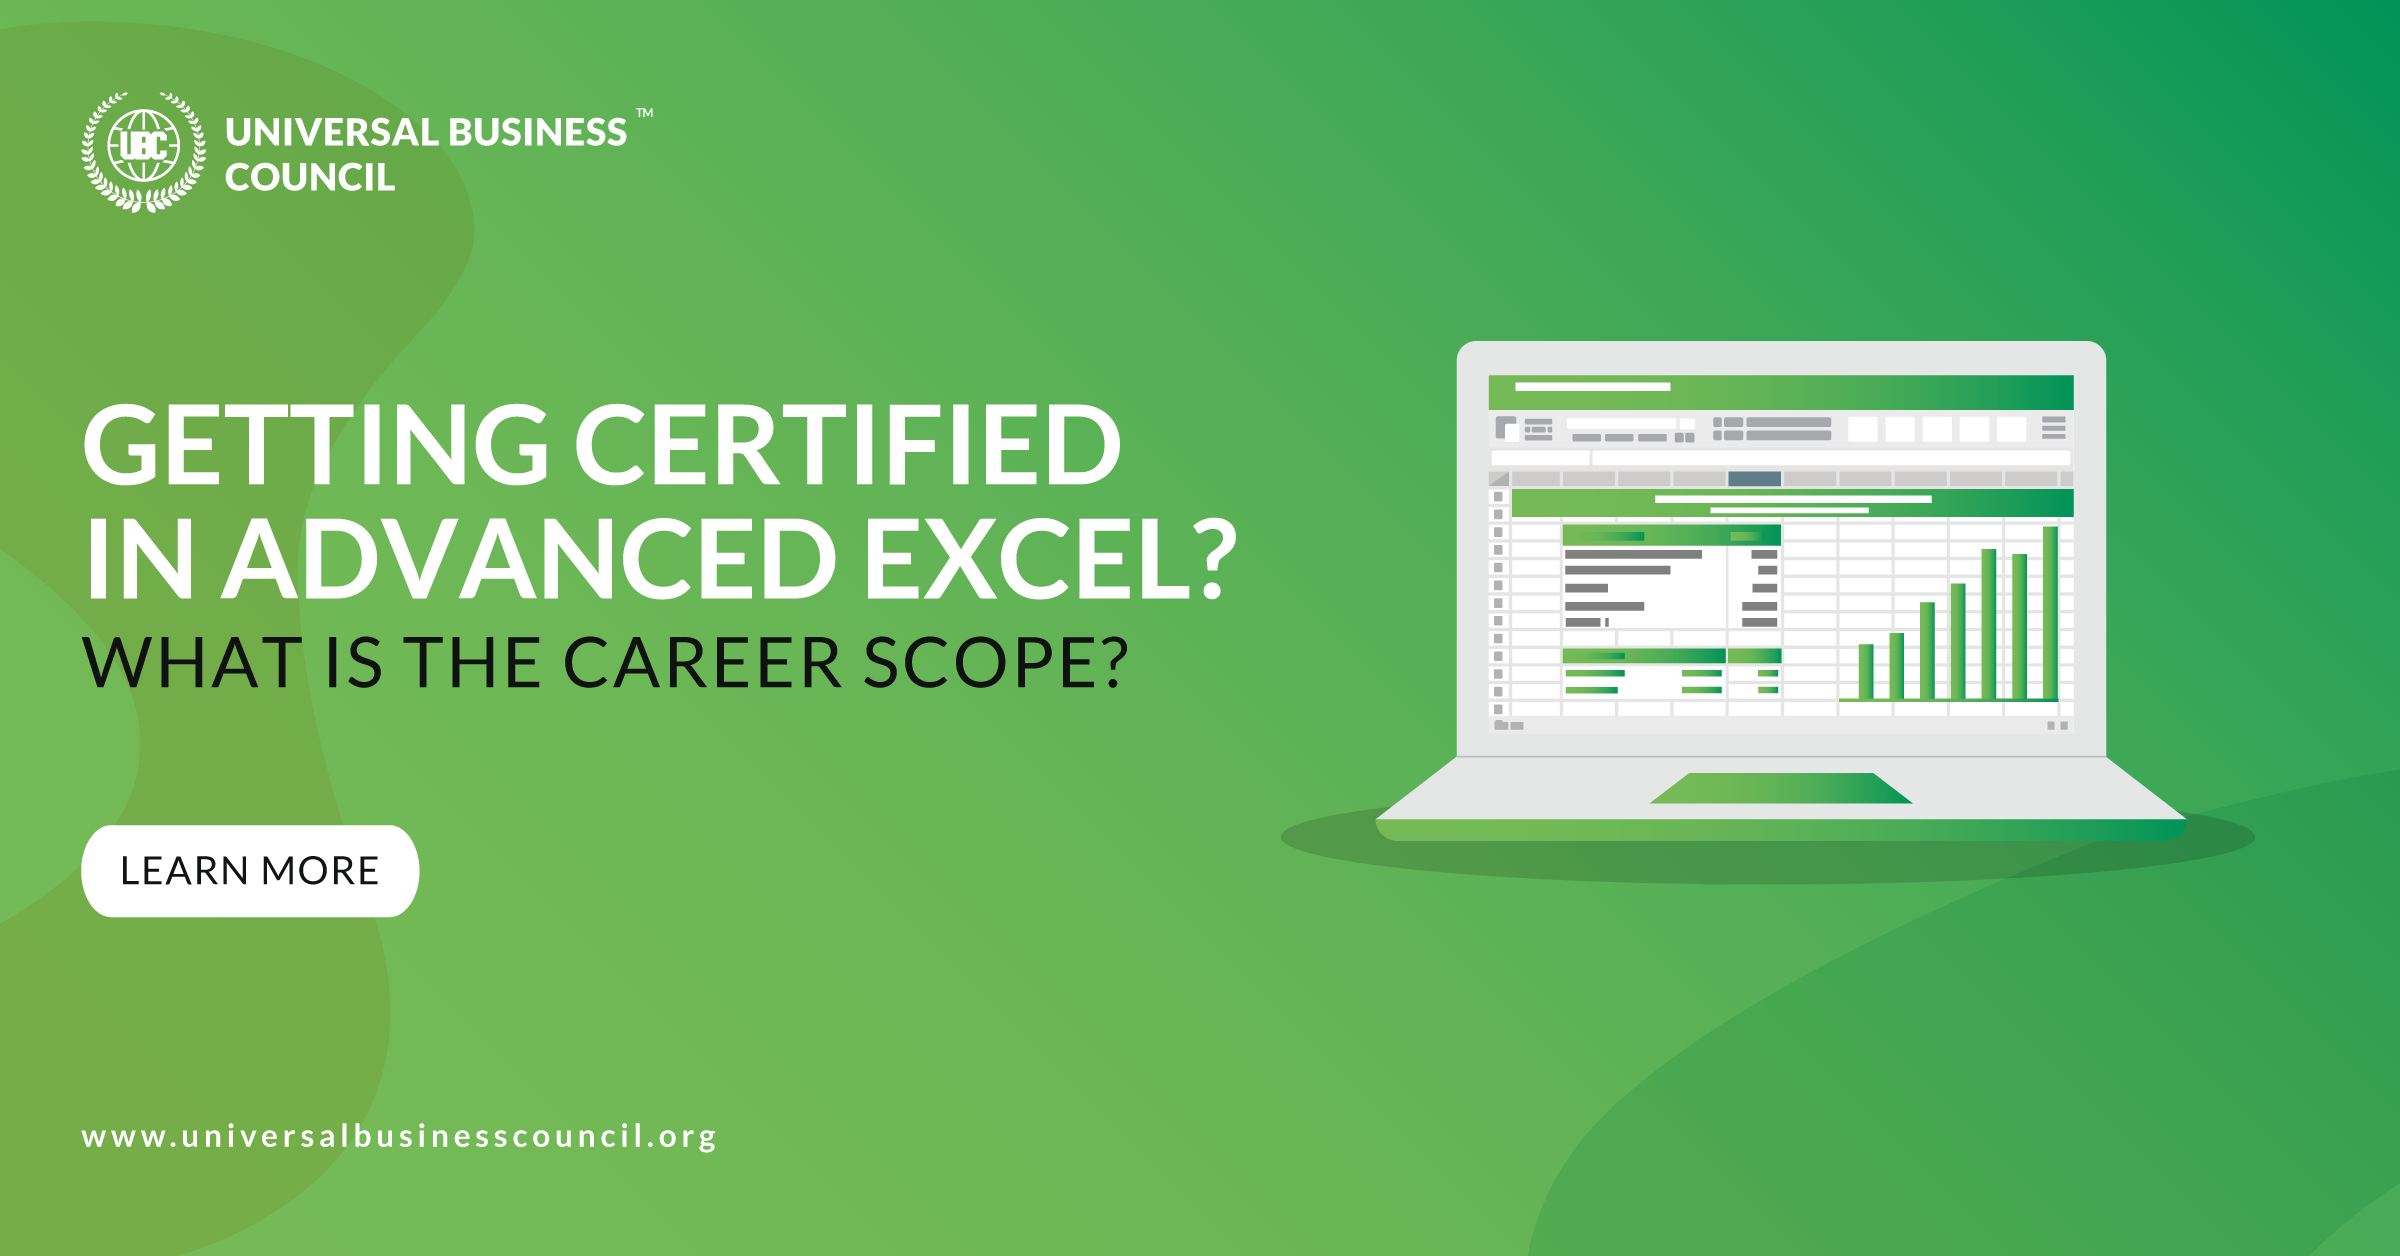 Getting-Certified-in-Advanced-Excel--What-is-the-Career-Scope